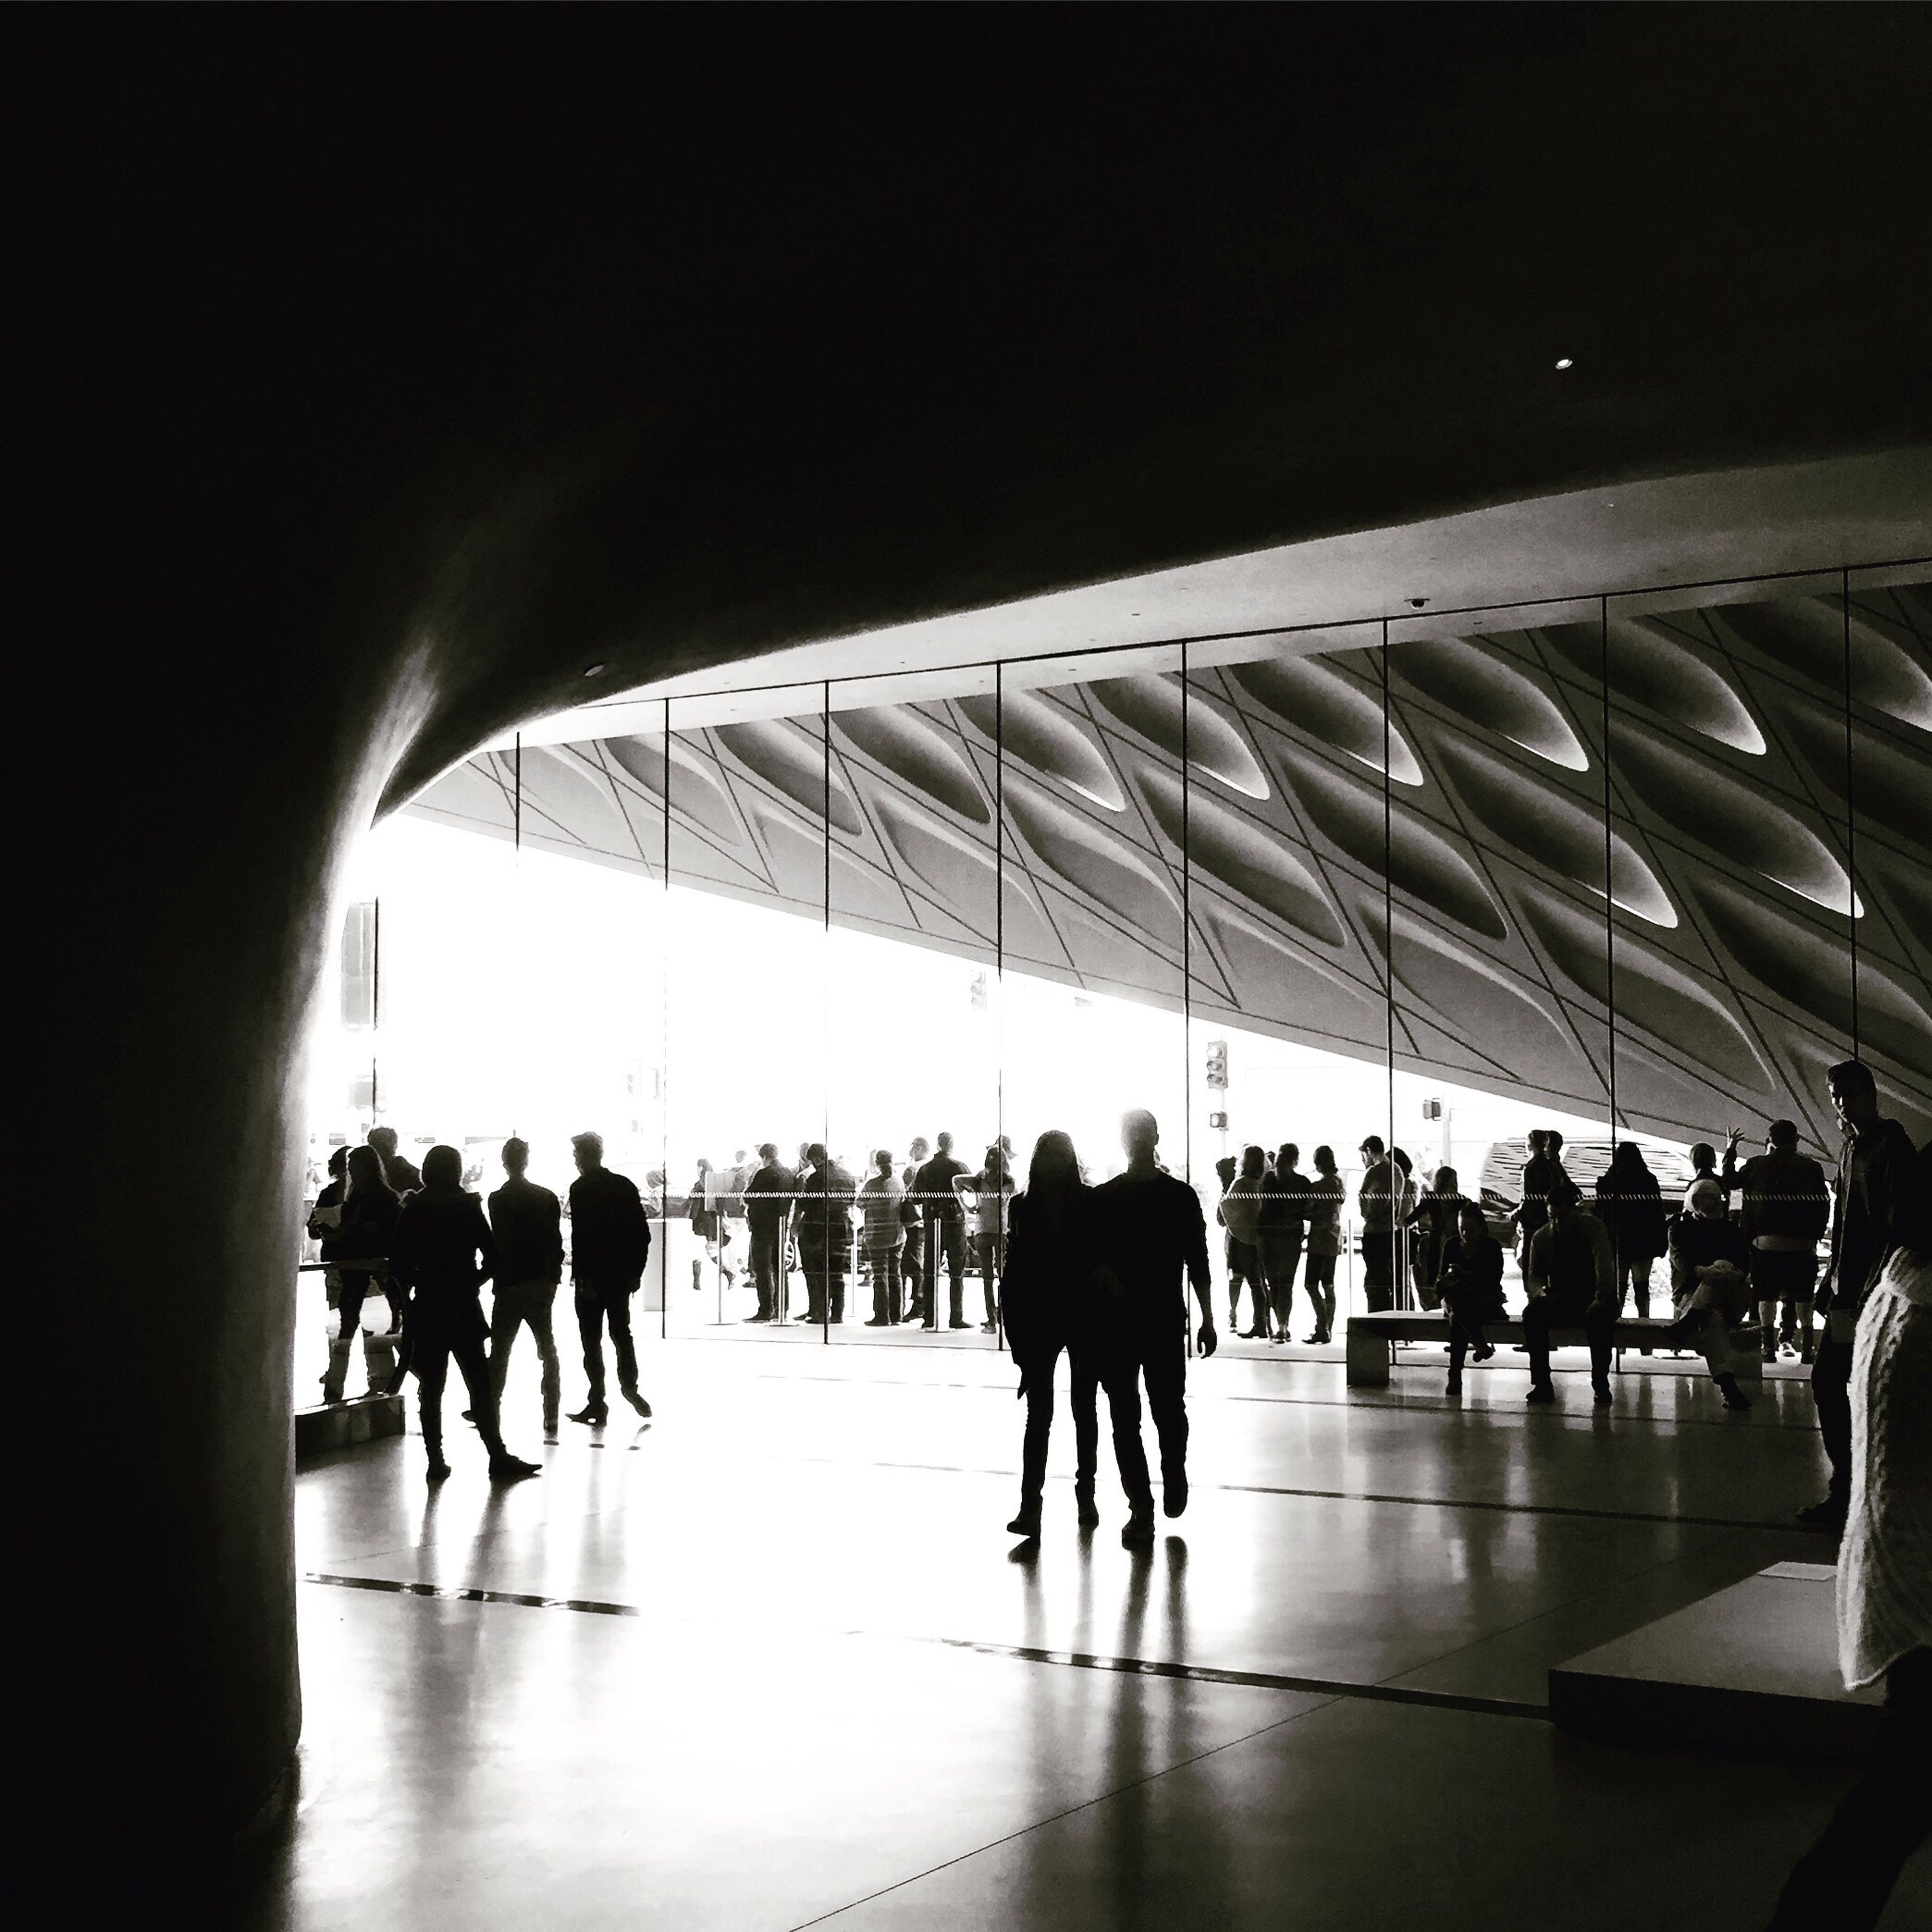 indoors, large group of people, architecture, built structure, men, person, walking, ceiling, lifestyles, city life, modern, travel, group of people, city, flooring, medium group of people, silhouette, full length, shopping mall